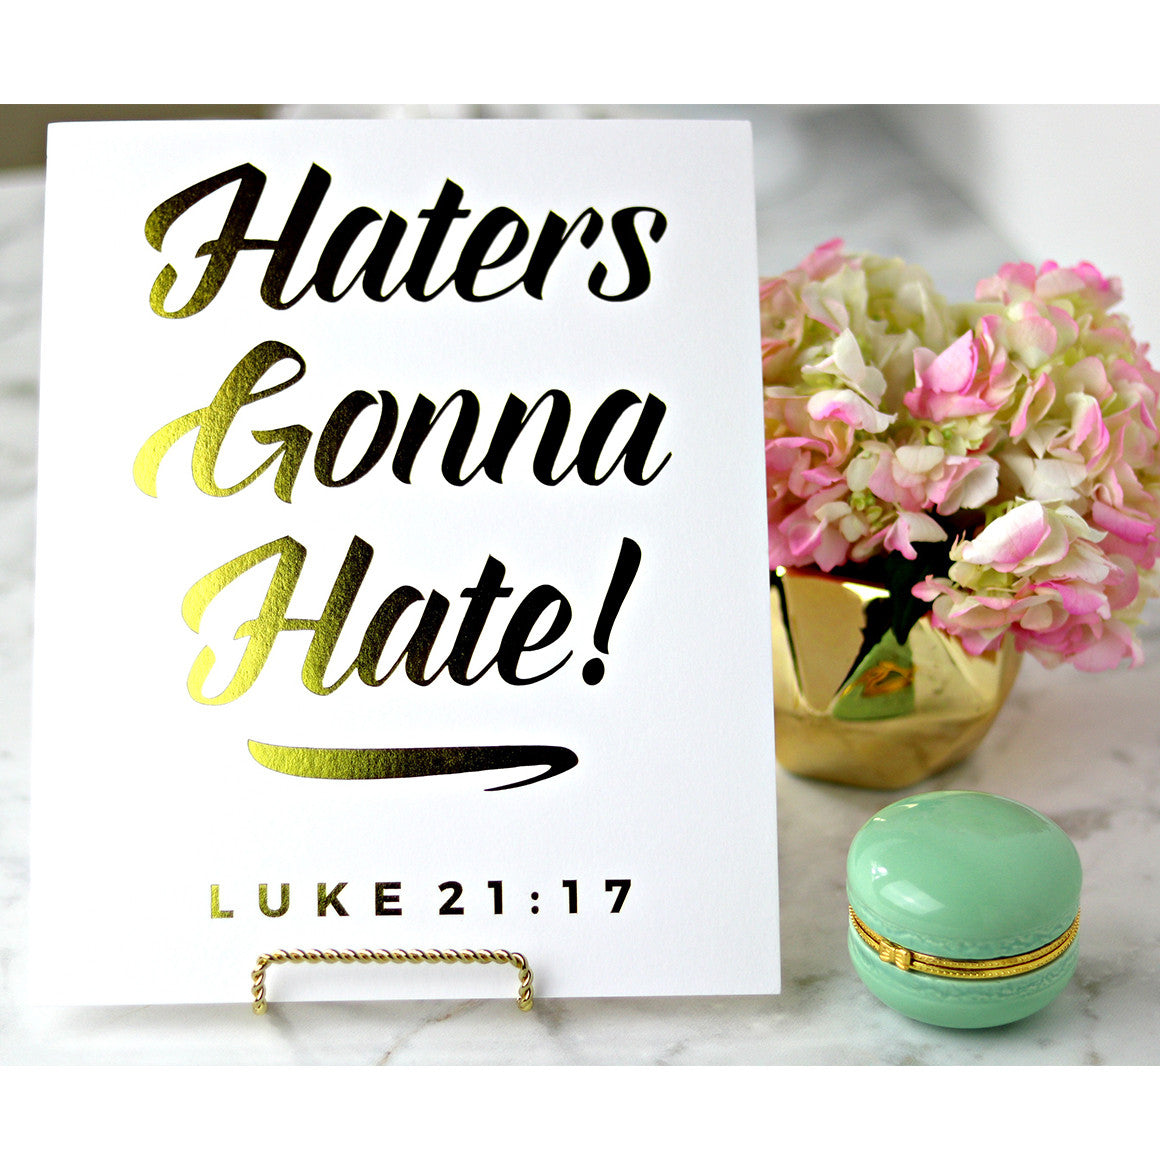 Haters Gonna Hate Luke 27:17 | Gold Foil Print | Christian Home Decor